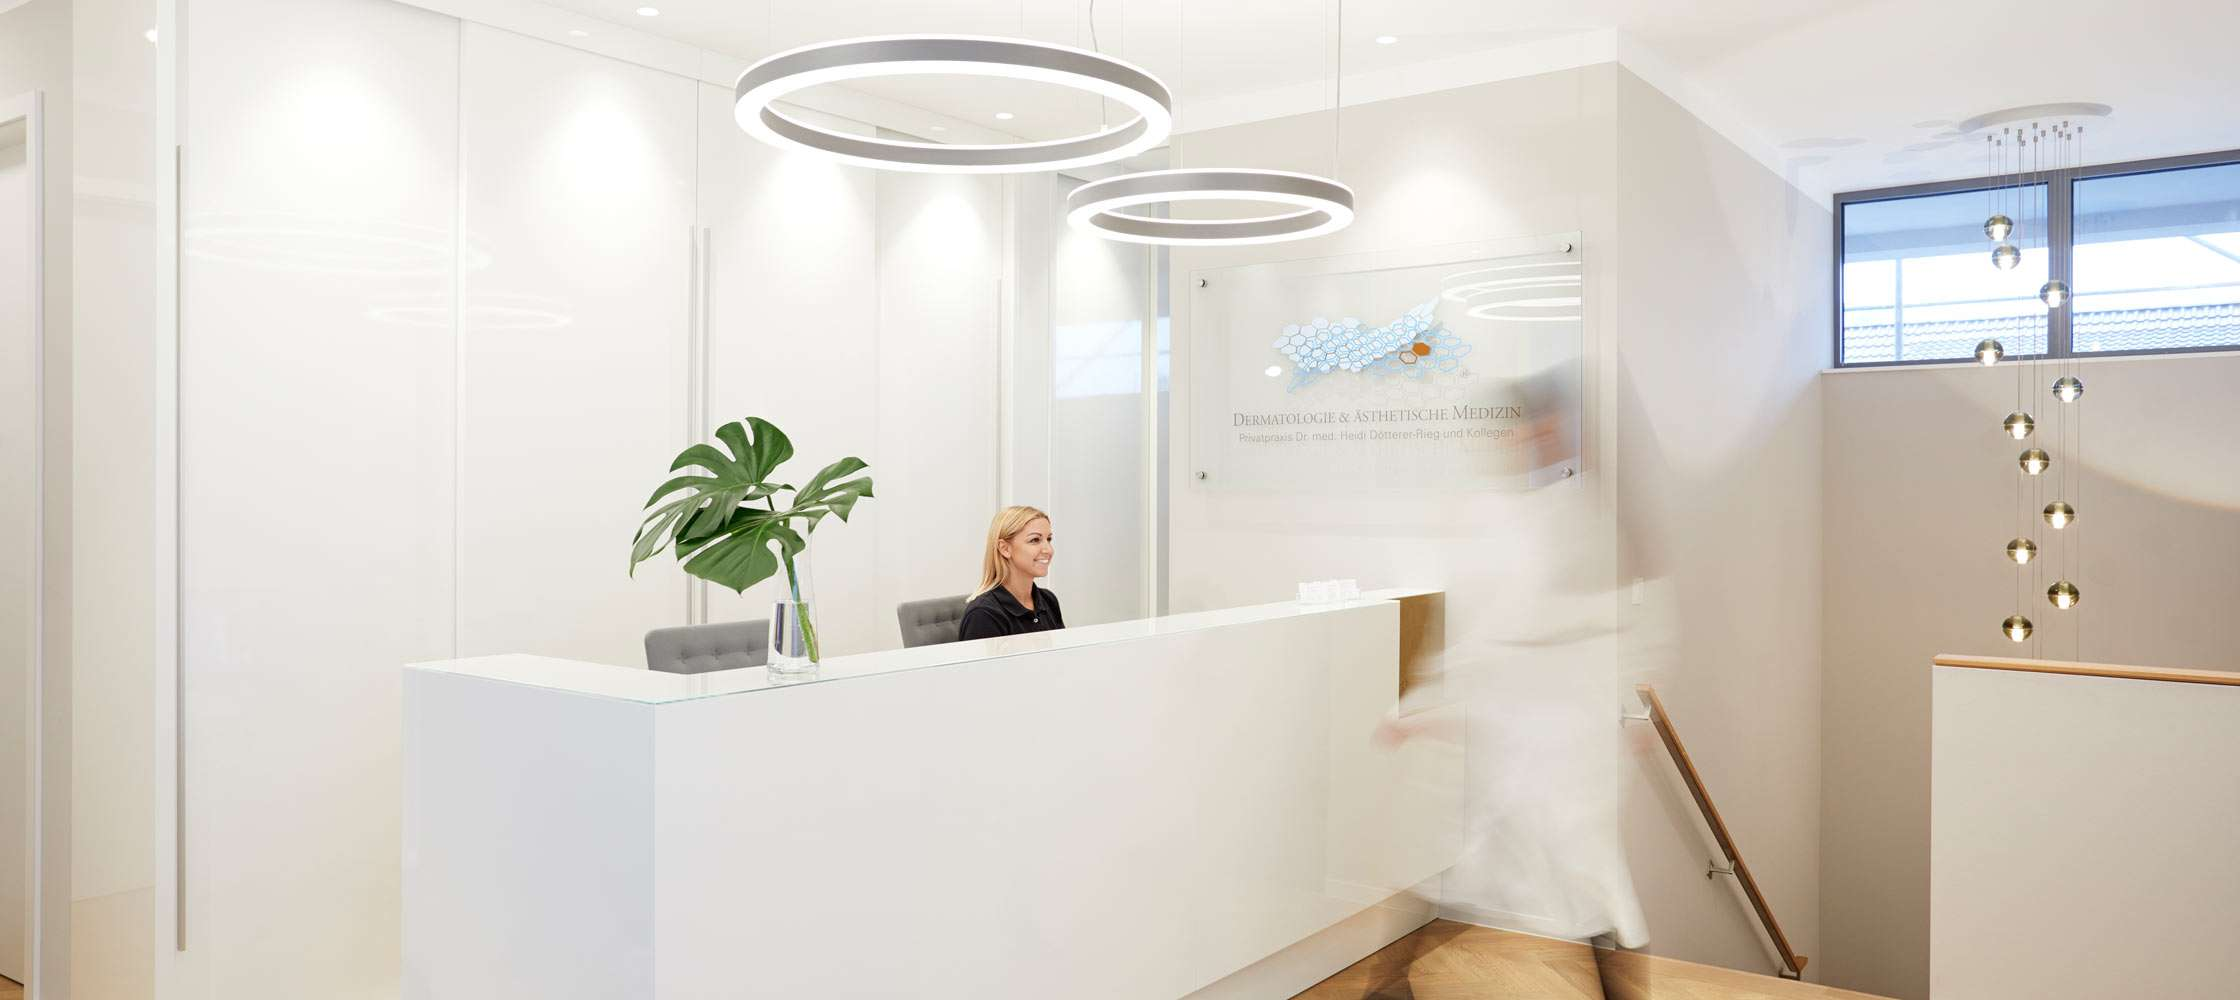 Reception of the dermatology private practice in Frankfurt near Fressgass. A staircase leads to the hallway where stands a bar for the reception of patients. The practice logo on glass is affixed on a wall. Futuristic ceiling lights brighten the room.